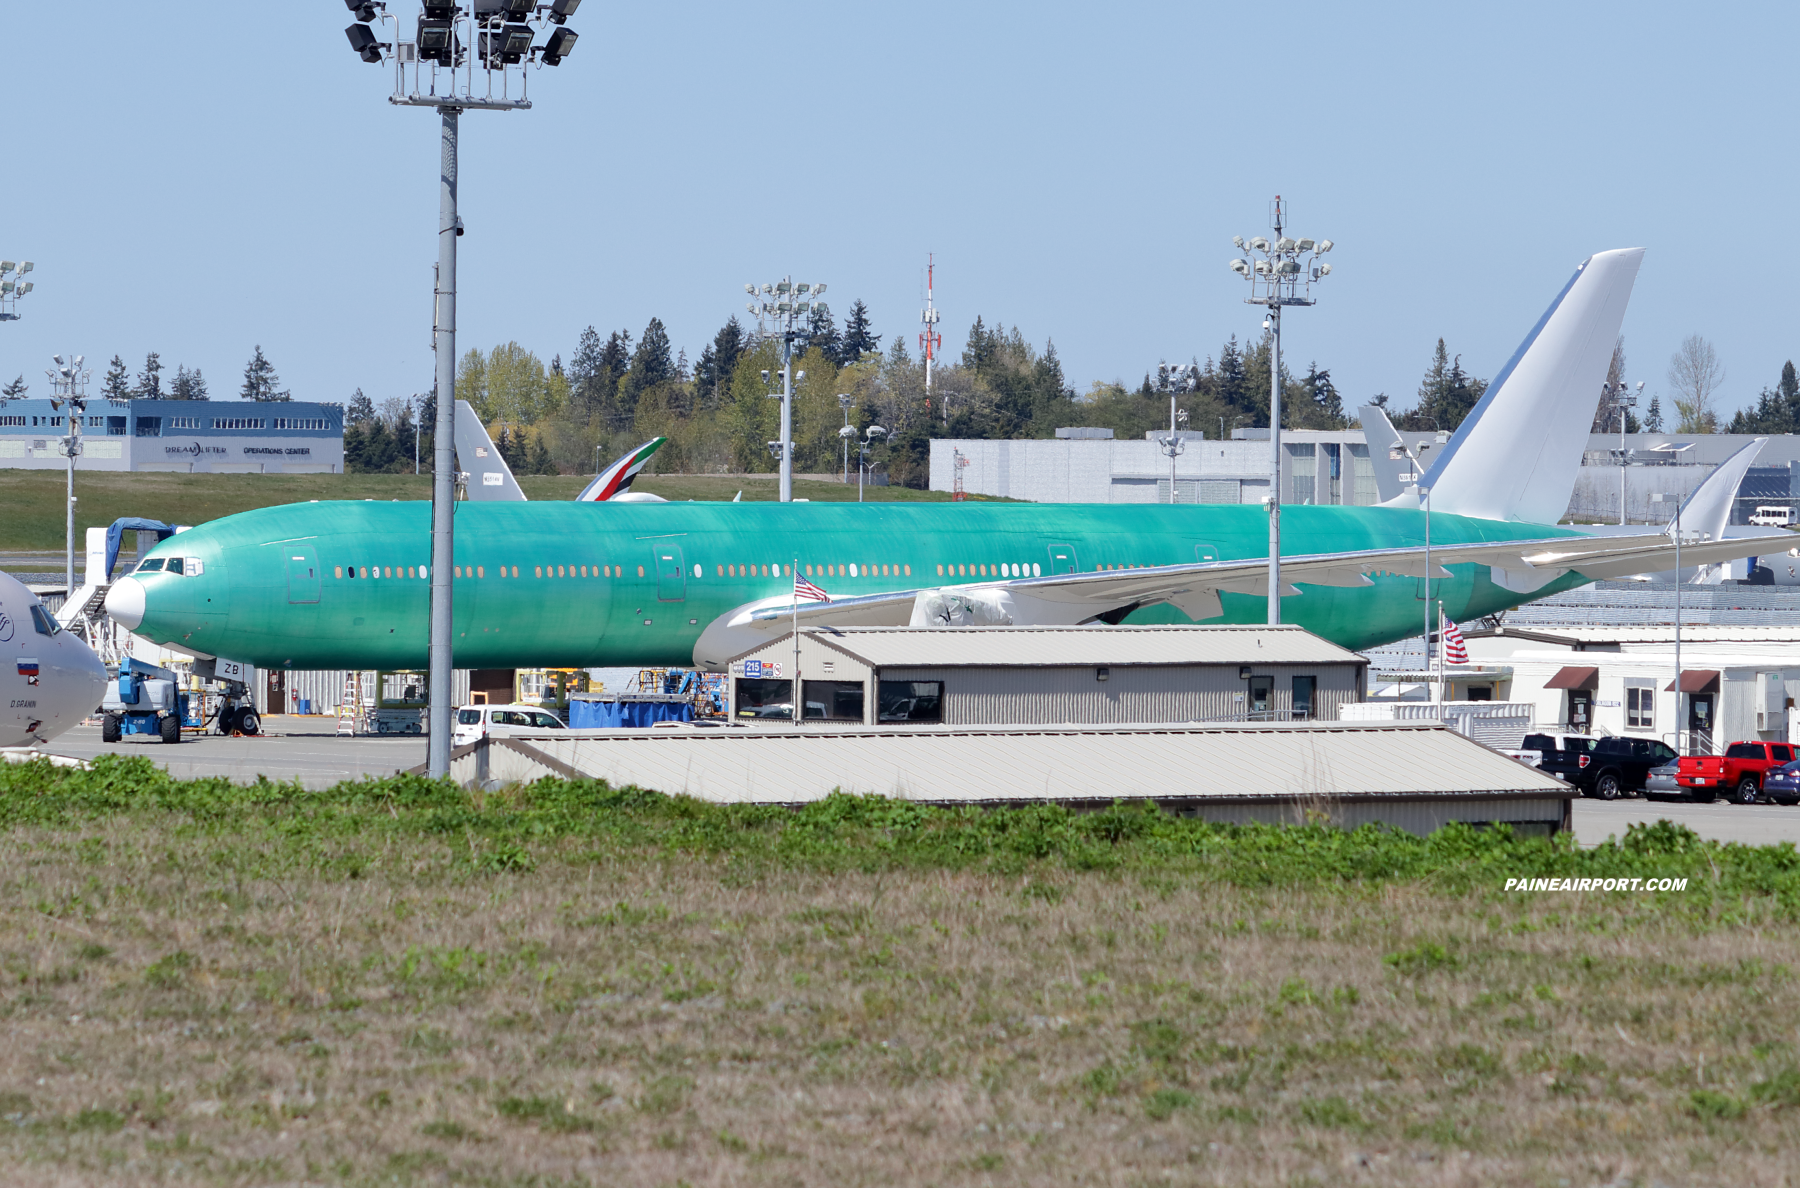 Emirates 777-9 A6-EZB at Paine Field